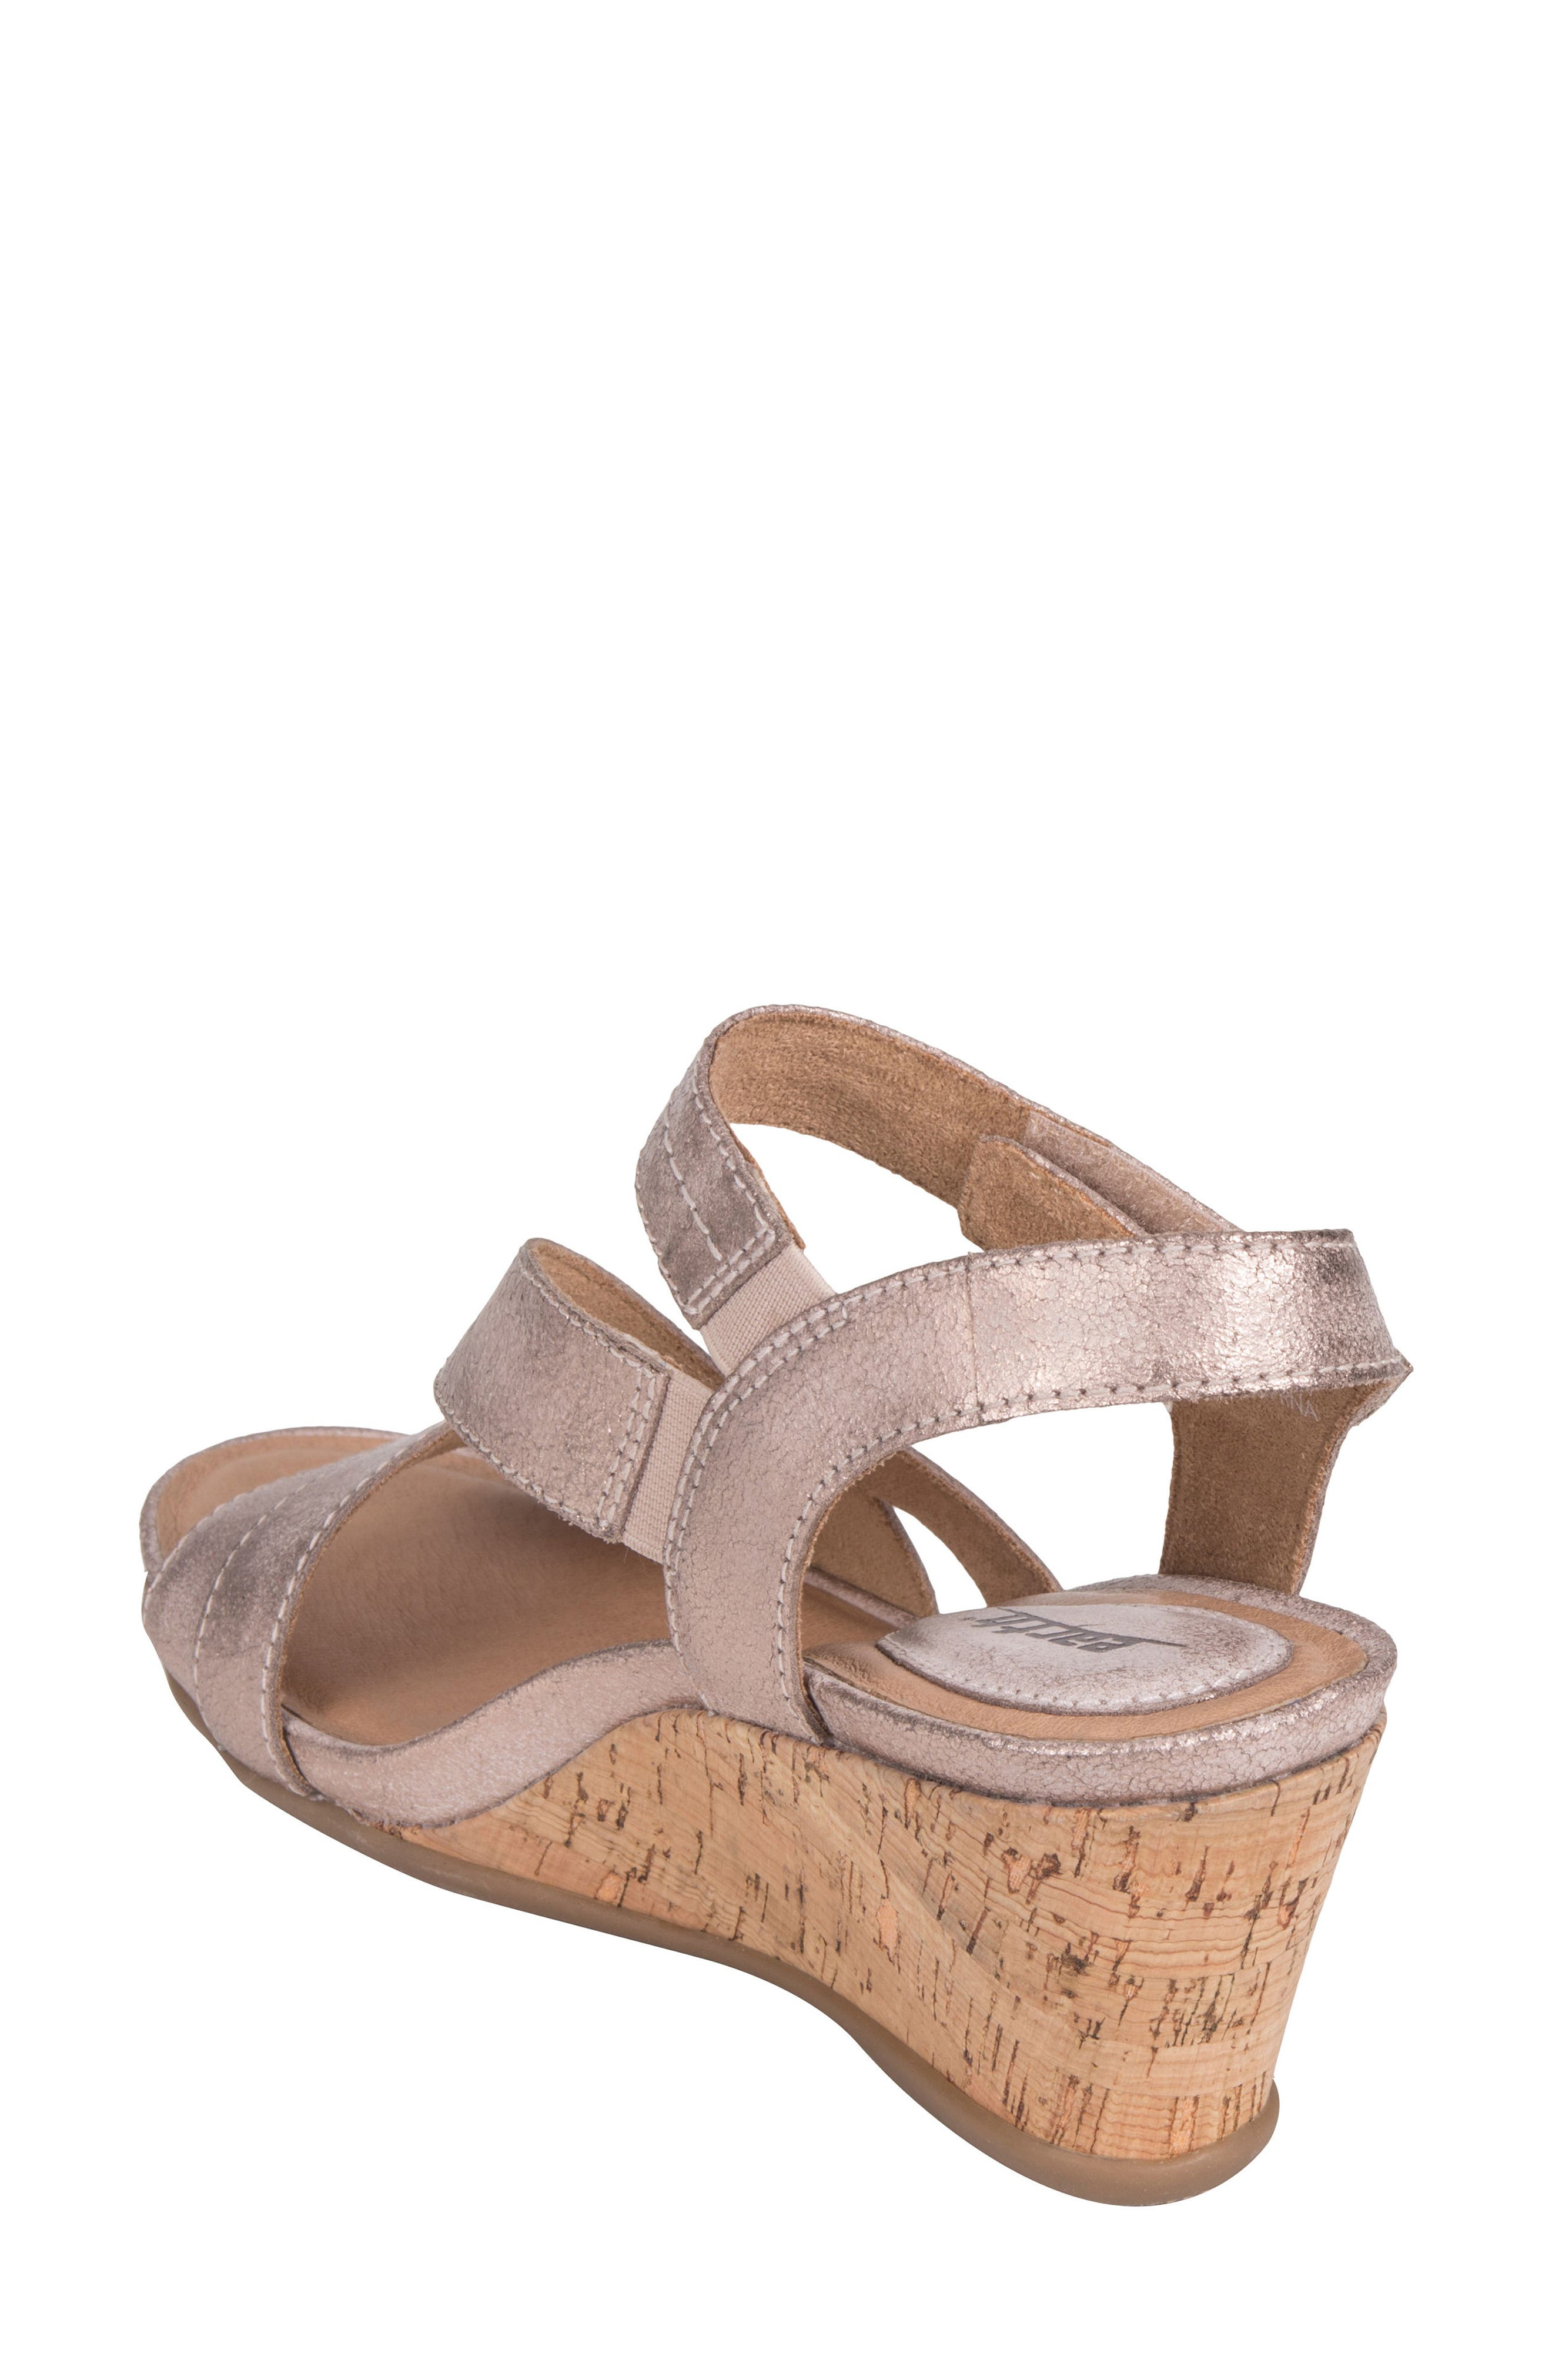 Thistle Wedge Sandal,                             Alternate thumbnail 2, color,                             Pink Leather